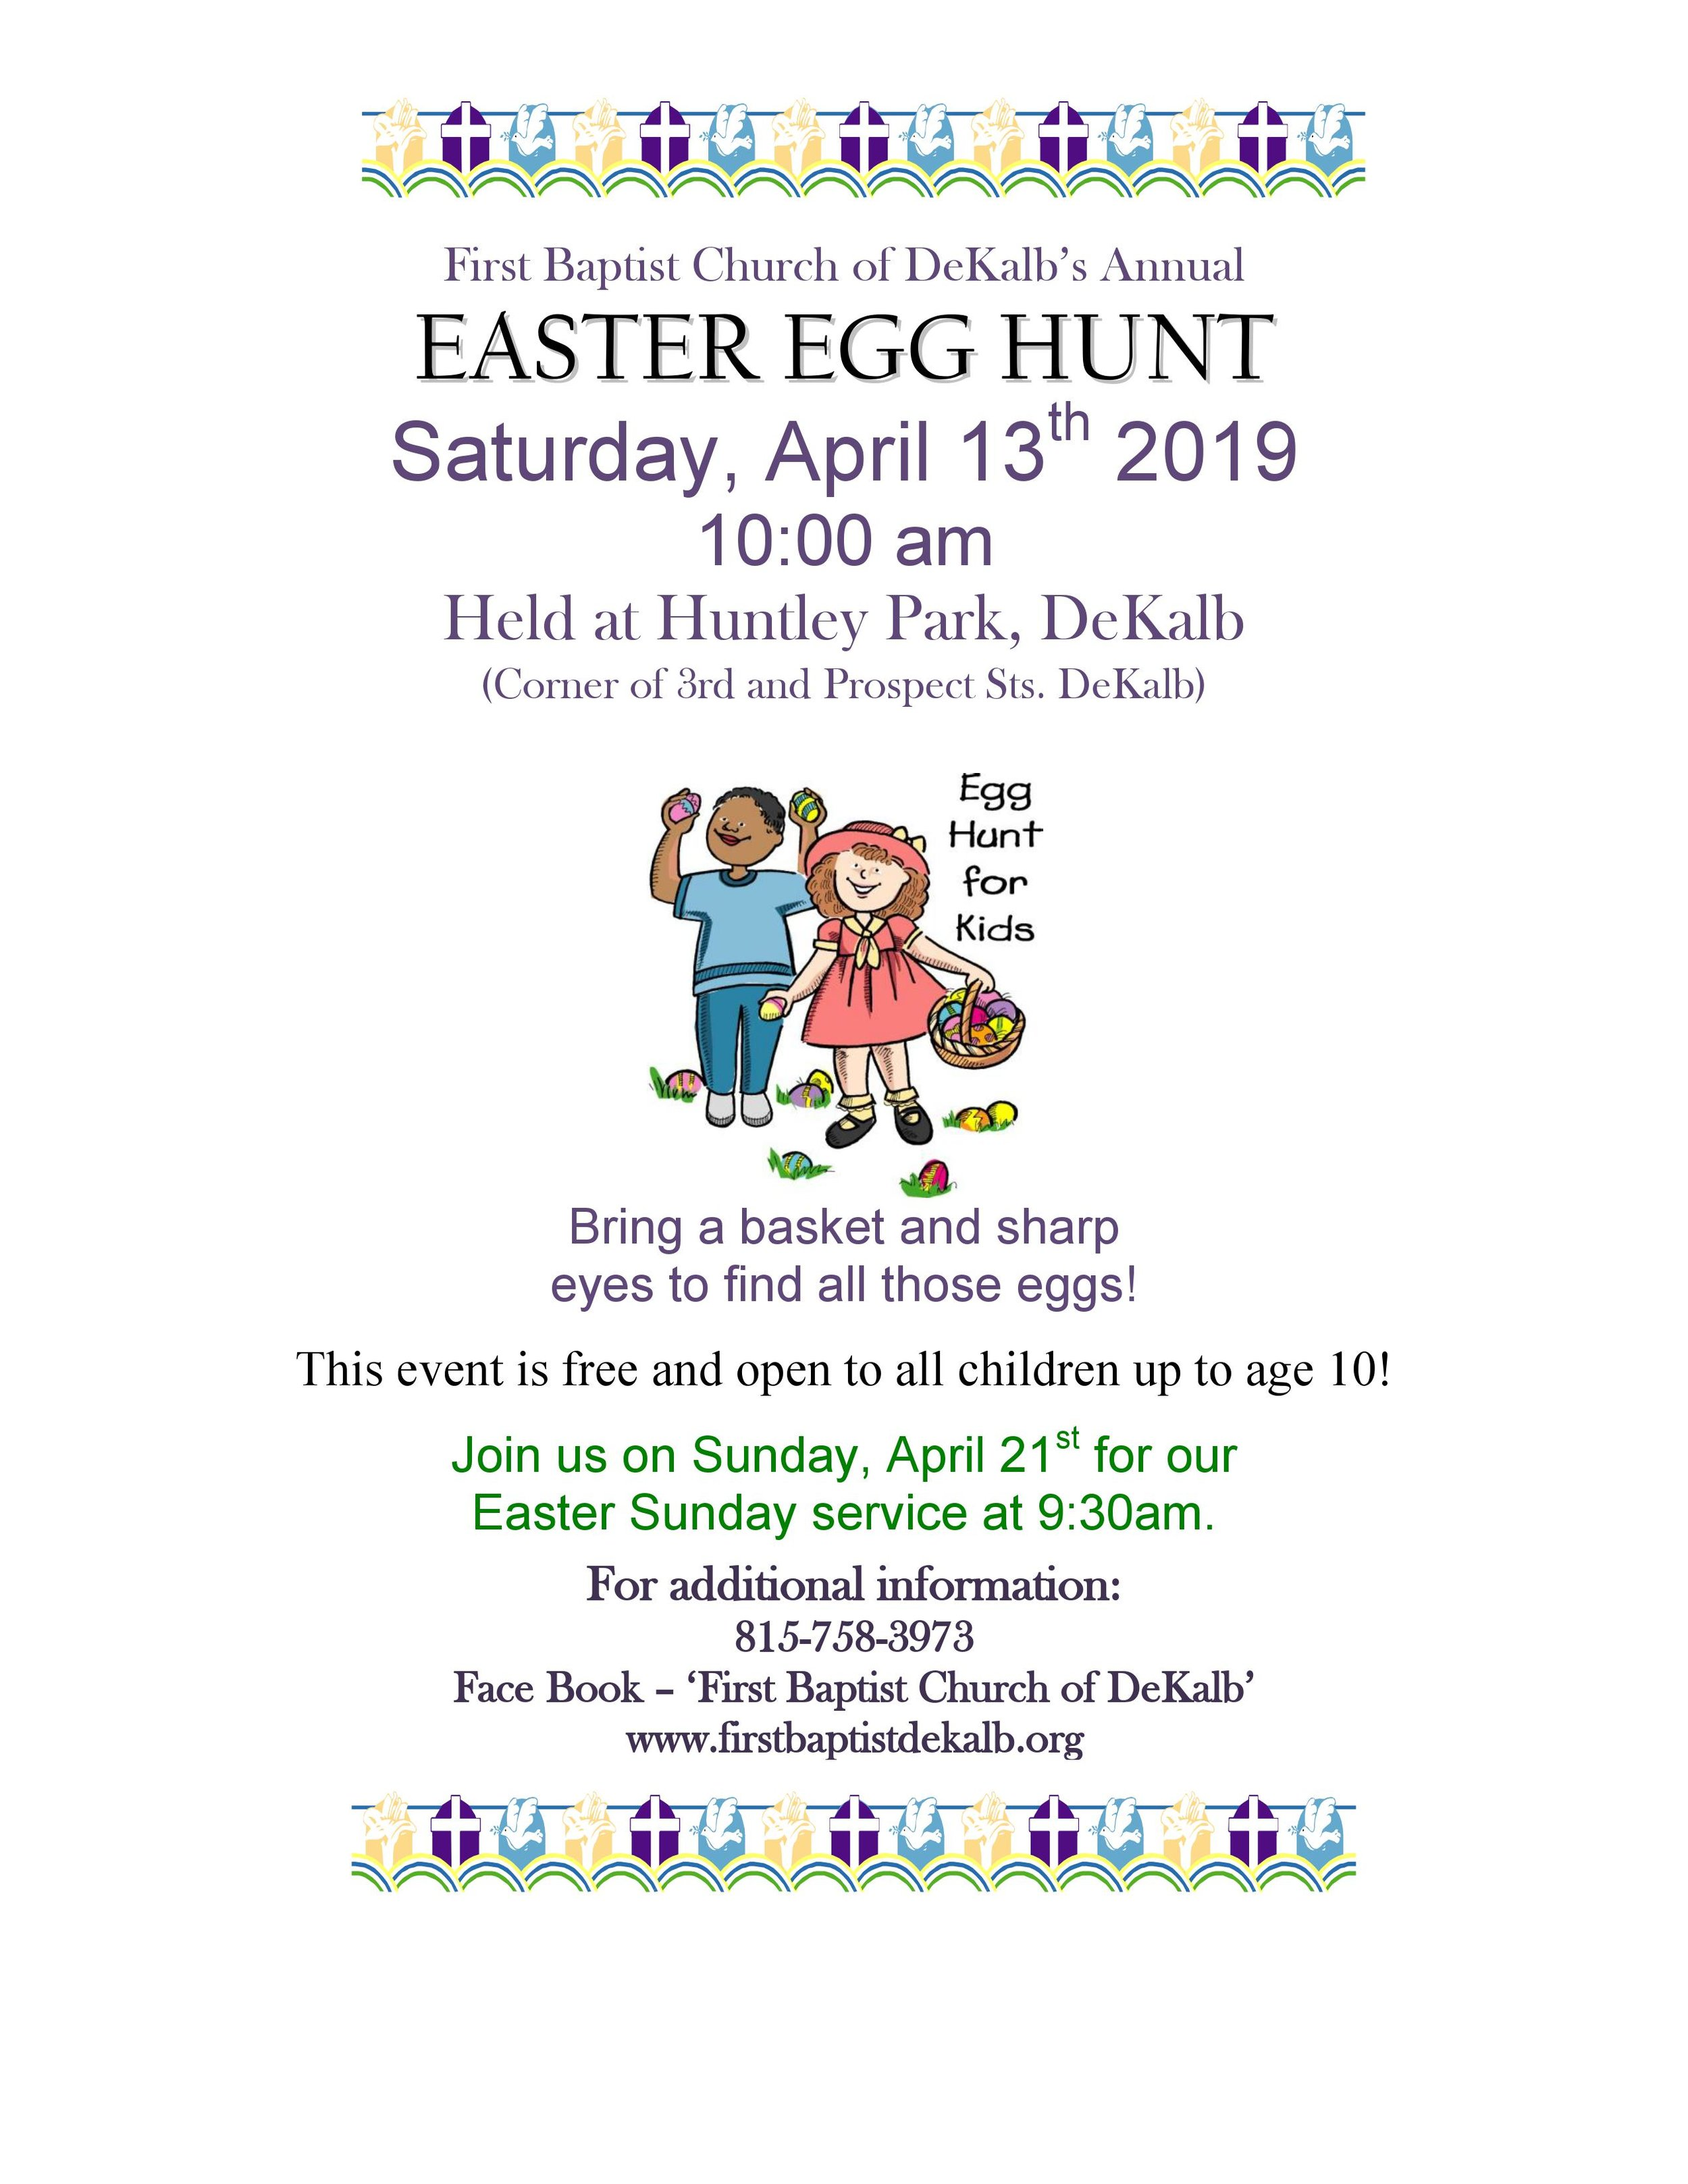 Join us on Saturday April 13th at 10am in Huntley Park for the FBCD Annual Easter Egg Hunt!This event is free and open to all children up to age 10. Please join us on Sunday, April 21 at 9:30 am for our Easter Sunday service. All are welcome! -